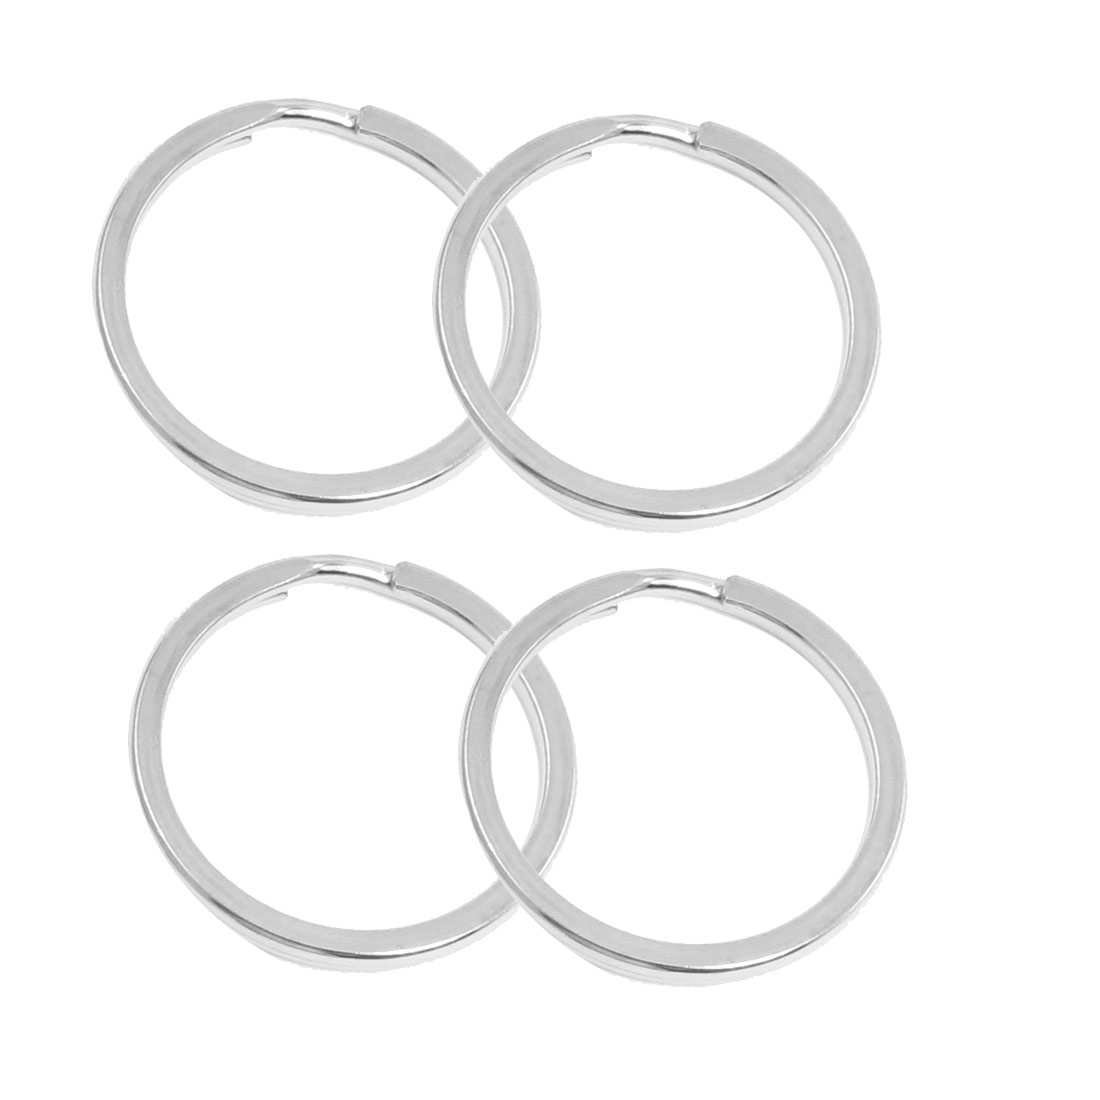 35mm Dia Silver Tone Metal Dual Loop Split Key Ring 4pcs